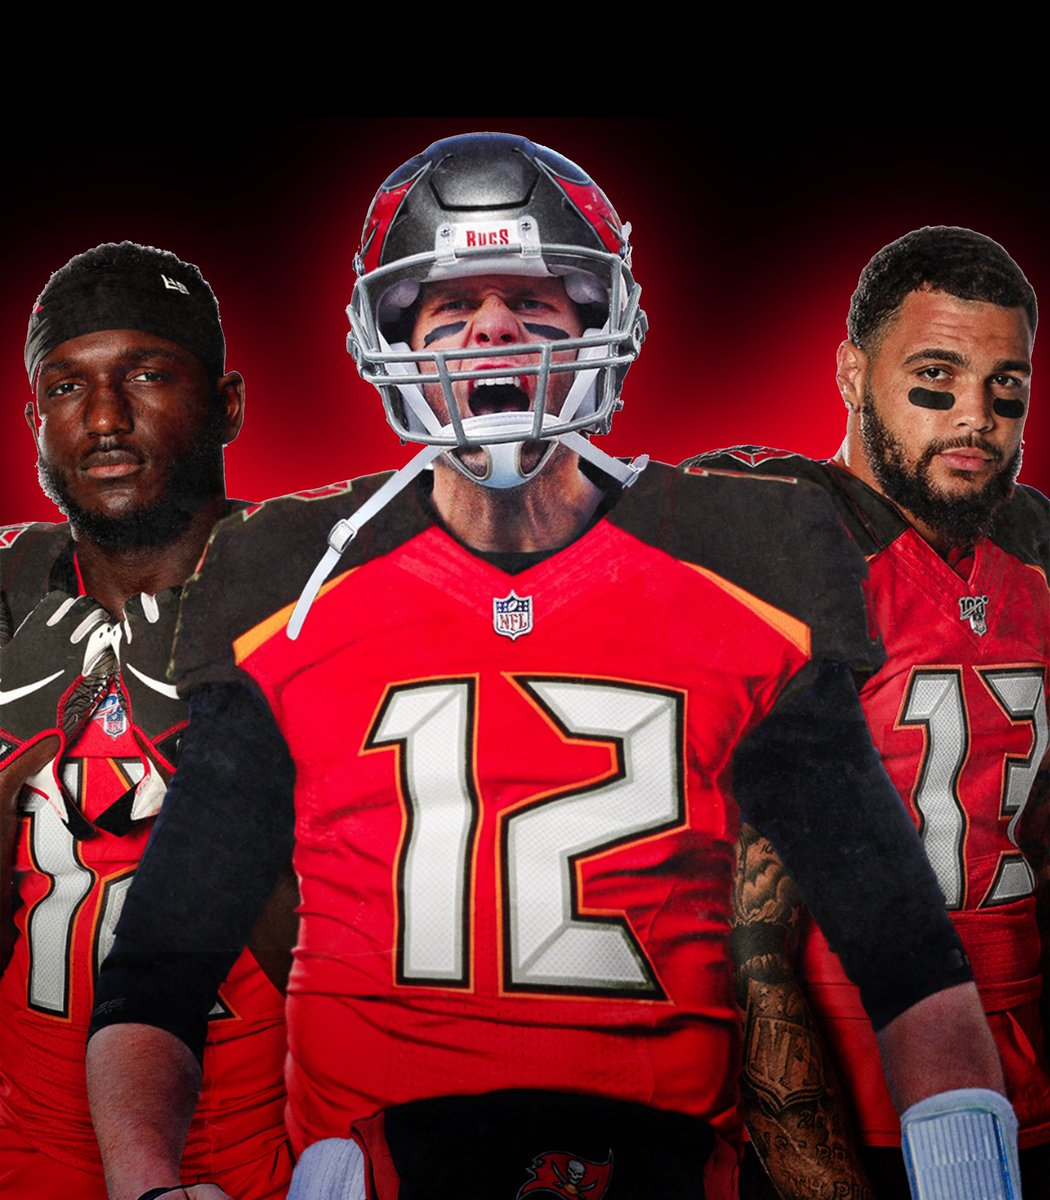 If you weren't with the Bucs when they went 7-9, don't be with them when they go 8-8 😤